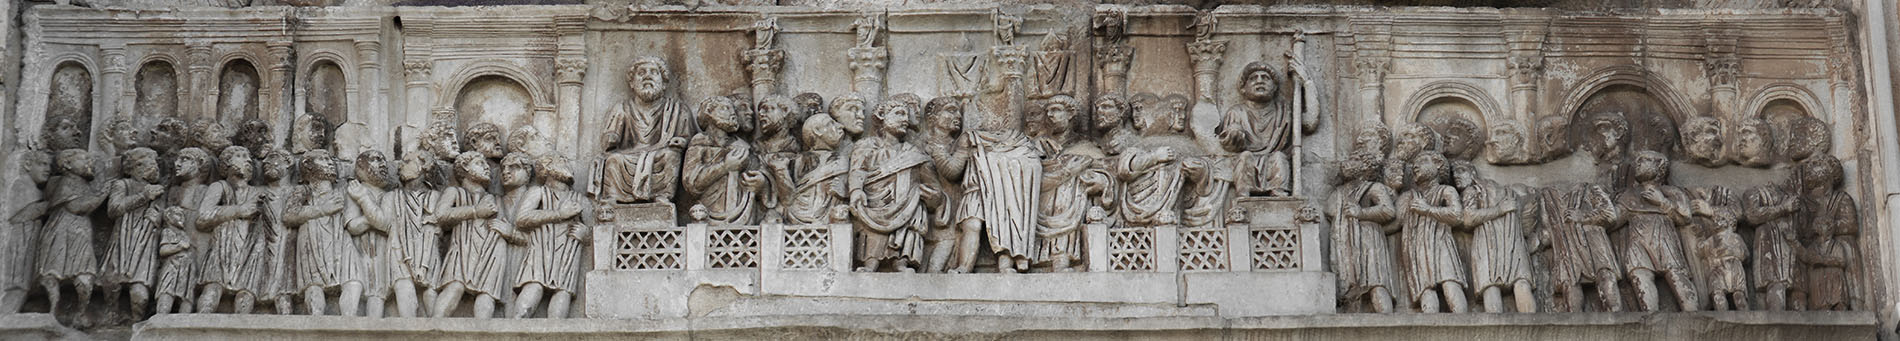 Constantine speaking to the citizens on the Forum Romanum (Oratio). Relief of the frieze on the eastern side (Constantinian frieze). Marble. 312—315 CE. Rome, Arch of Constantine